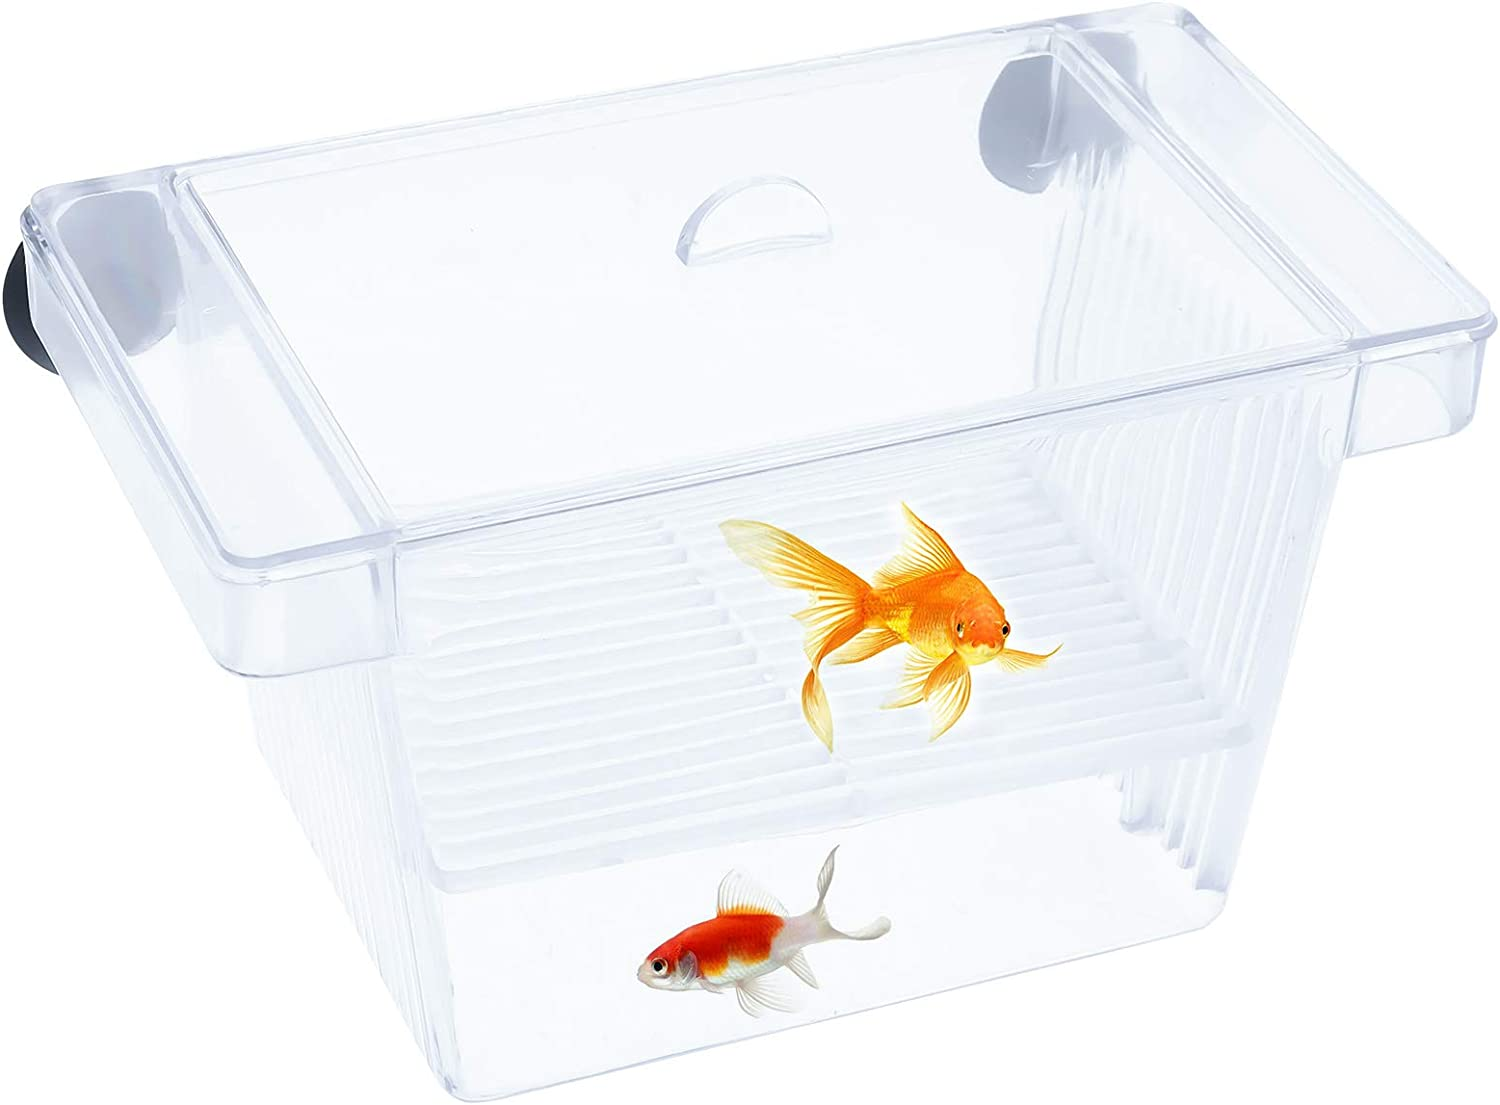 AUXSOUL Fish Hatchery, Transparent Fish Breeding Box with 2 Suction Cups for Breeding and Protecting Fry in The Aquarium or at Home